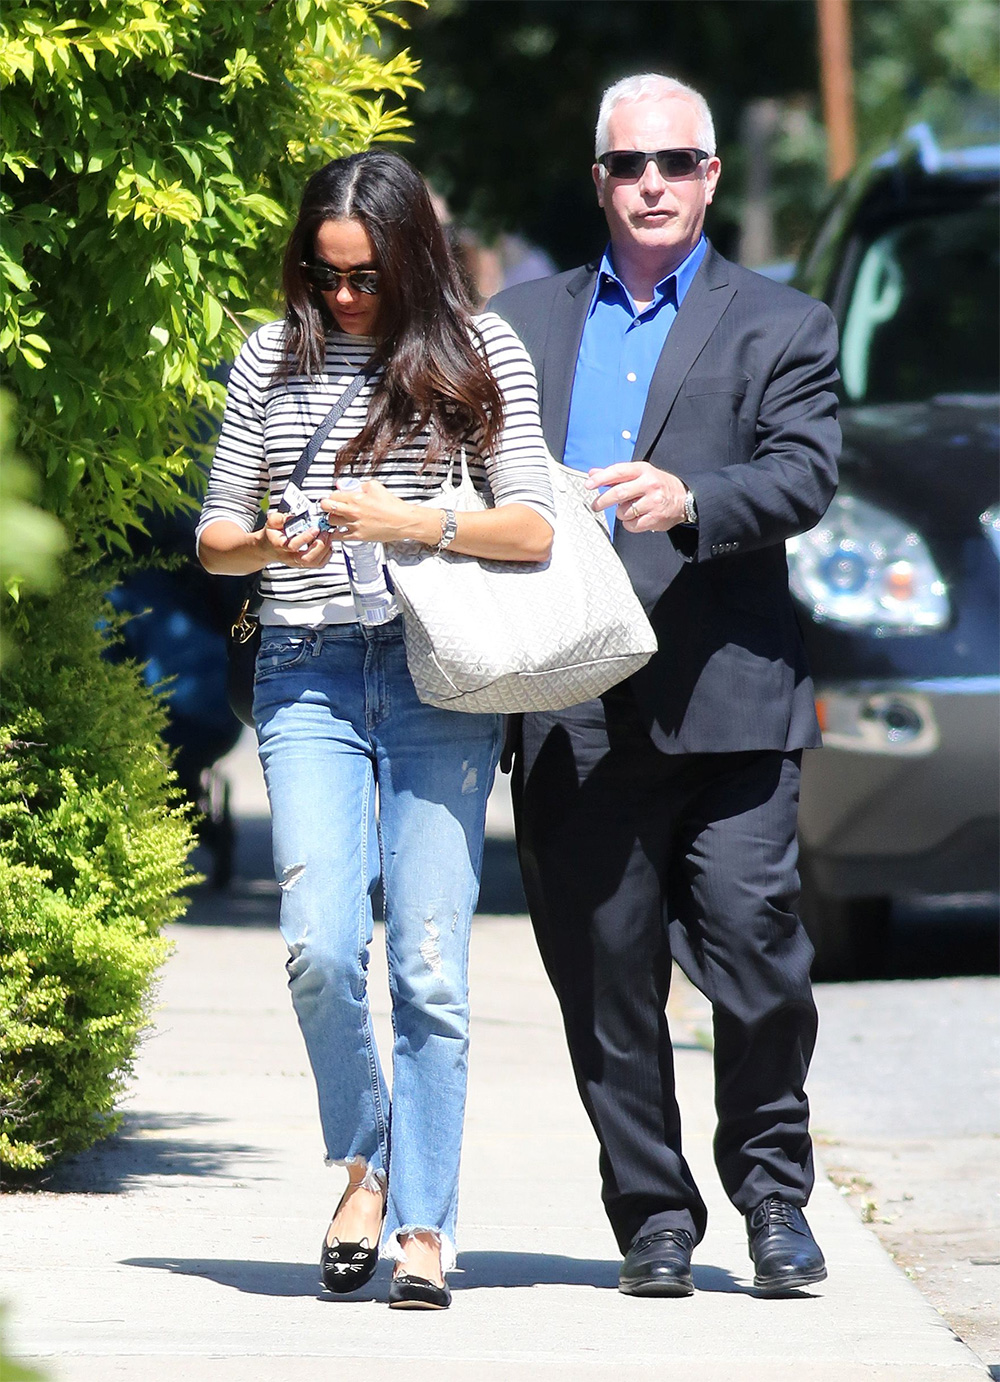 02ae7be24 Meghan Markle arrives home surrounded by security in Toronto on July 6,  2017.